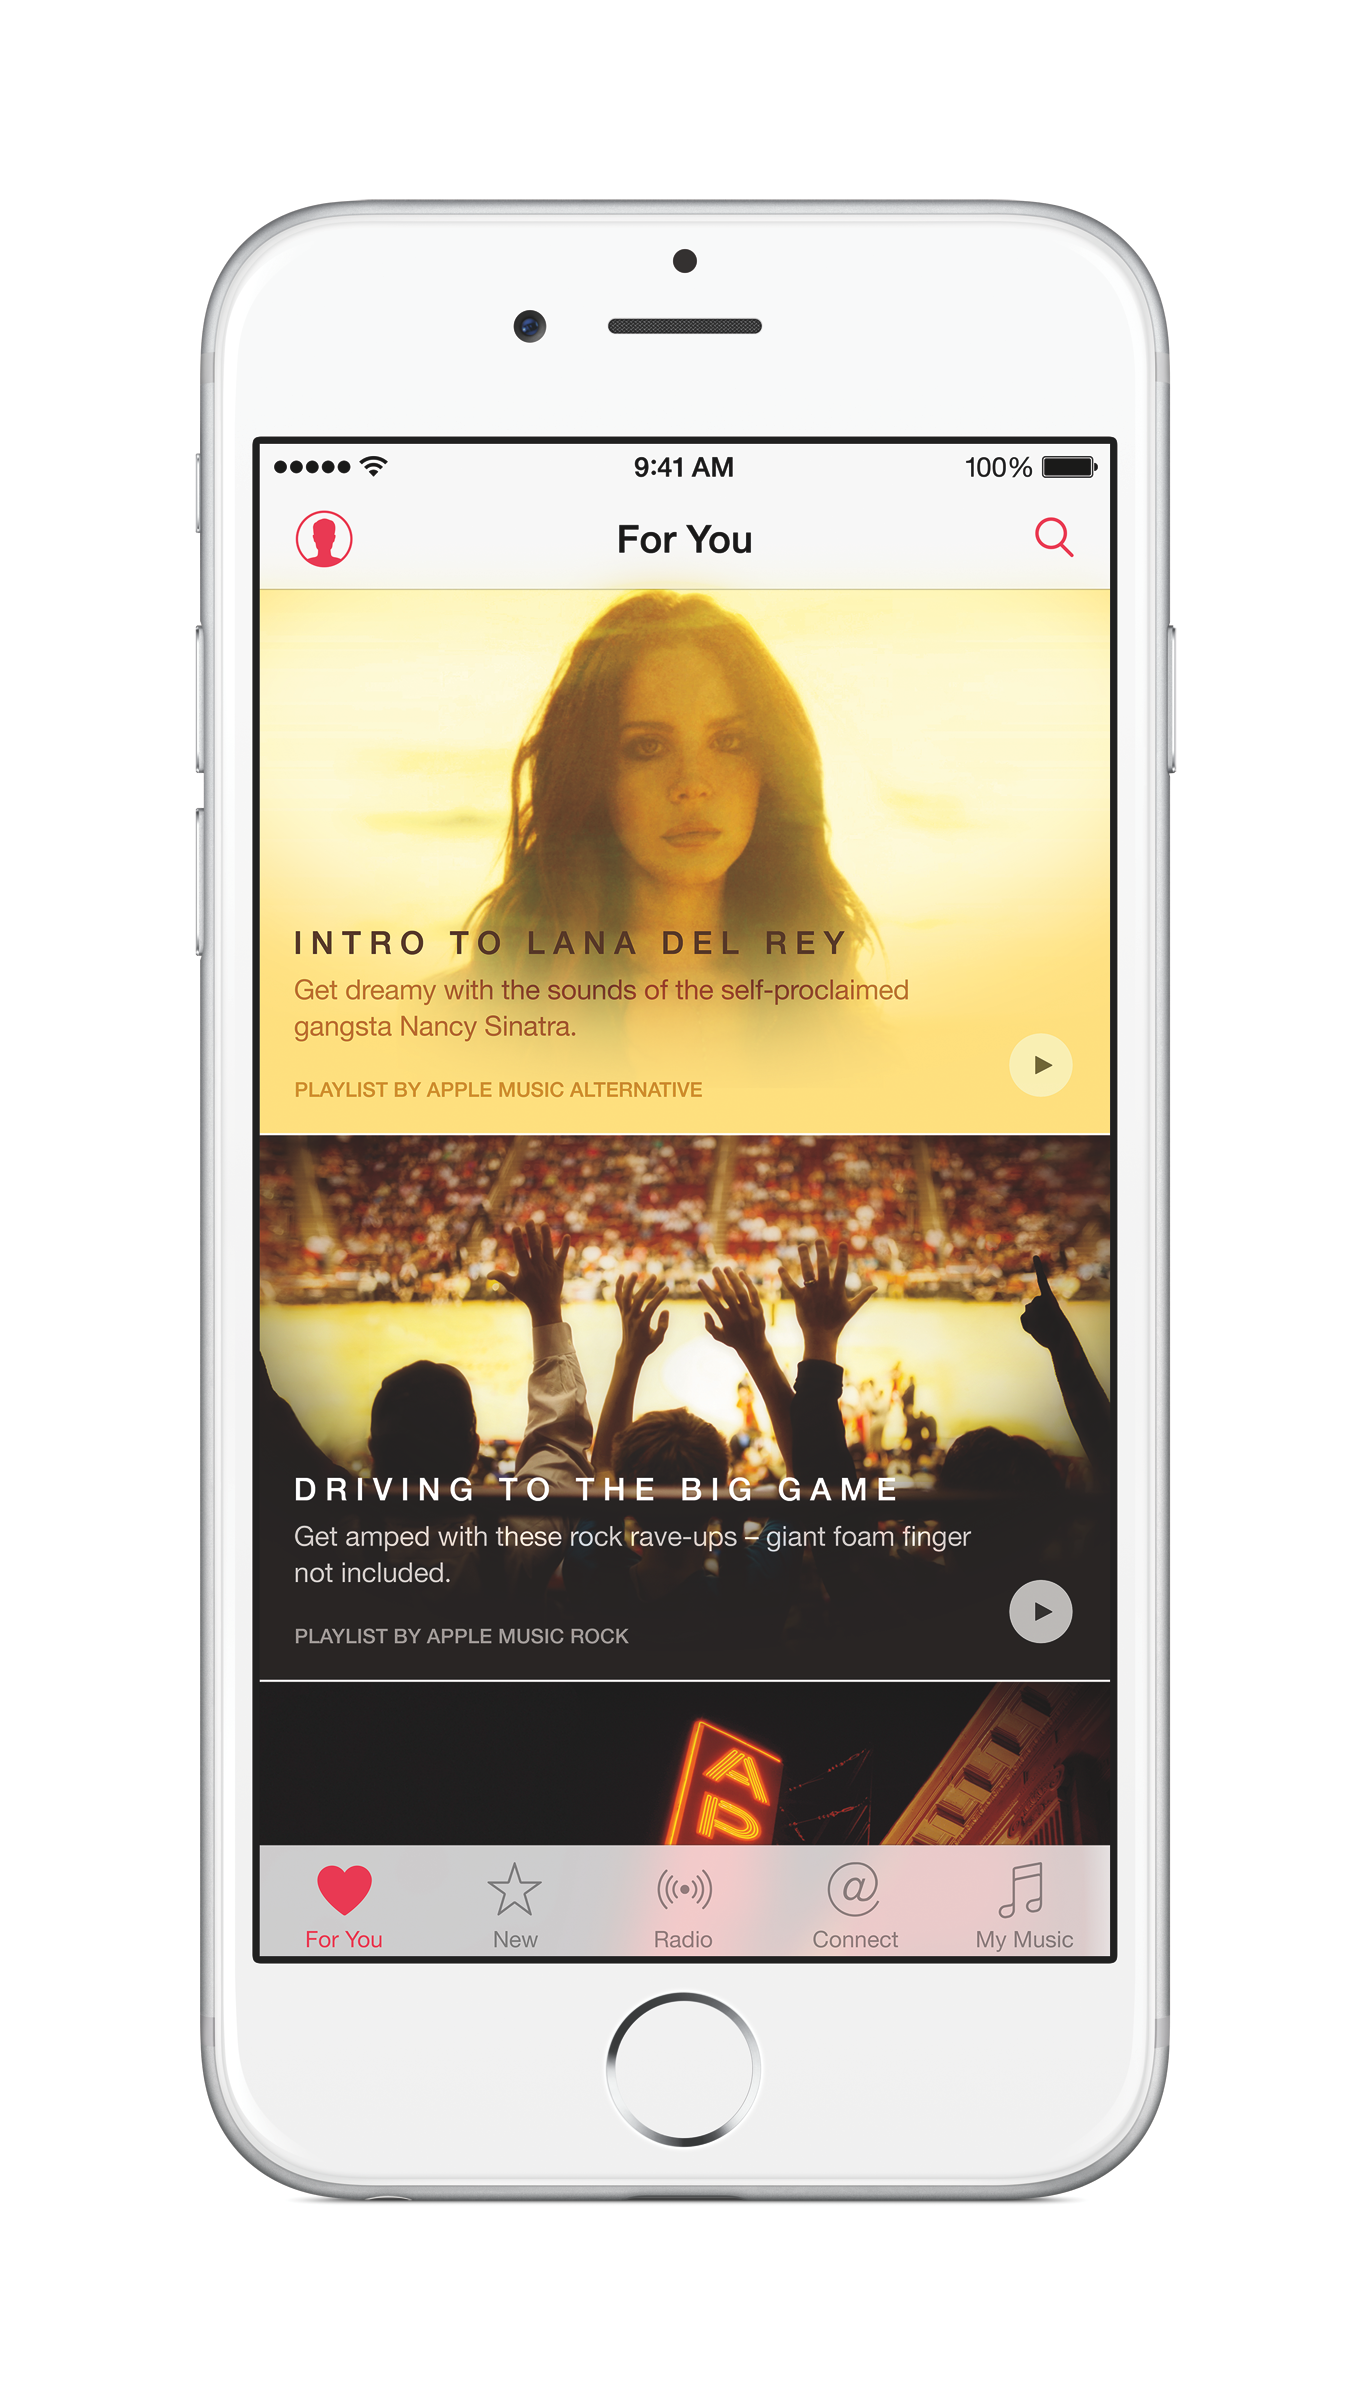 Here's an in-depth look at Apple Music ... ask us anything